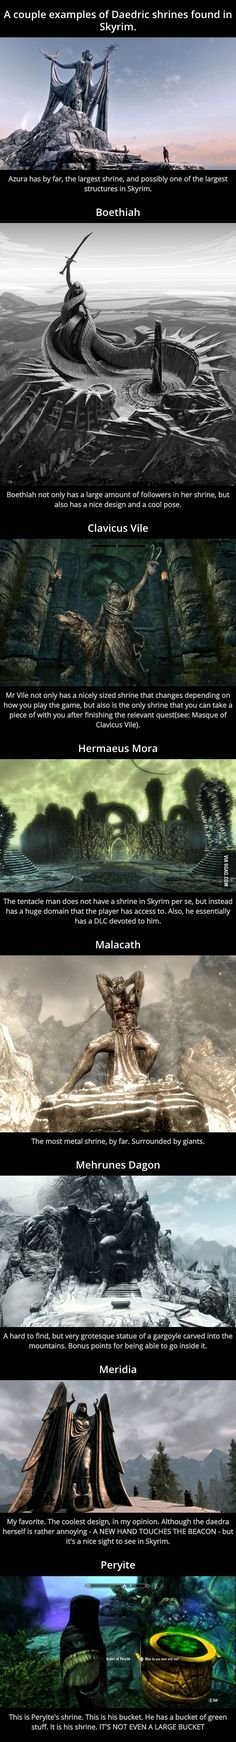 Why Peryite is the Worst Daedric Prince in Skyrim: Shrine Analysis - 9GAG